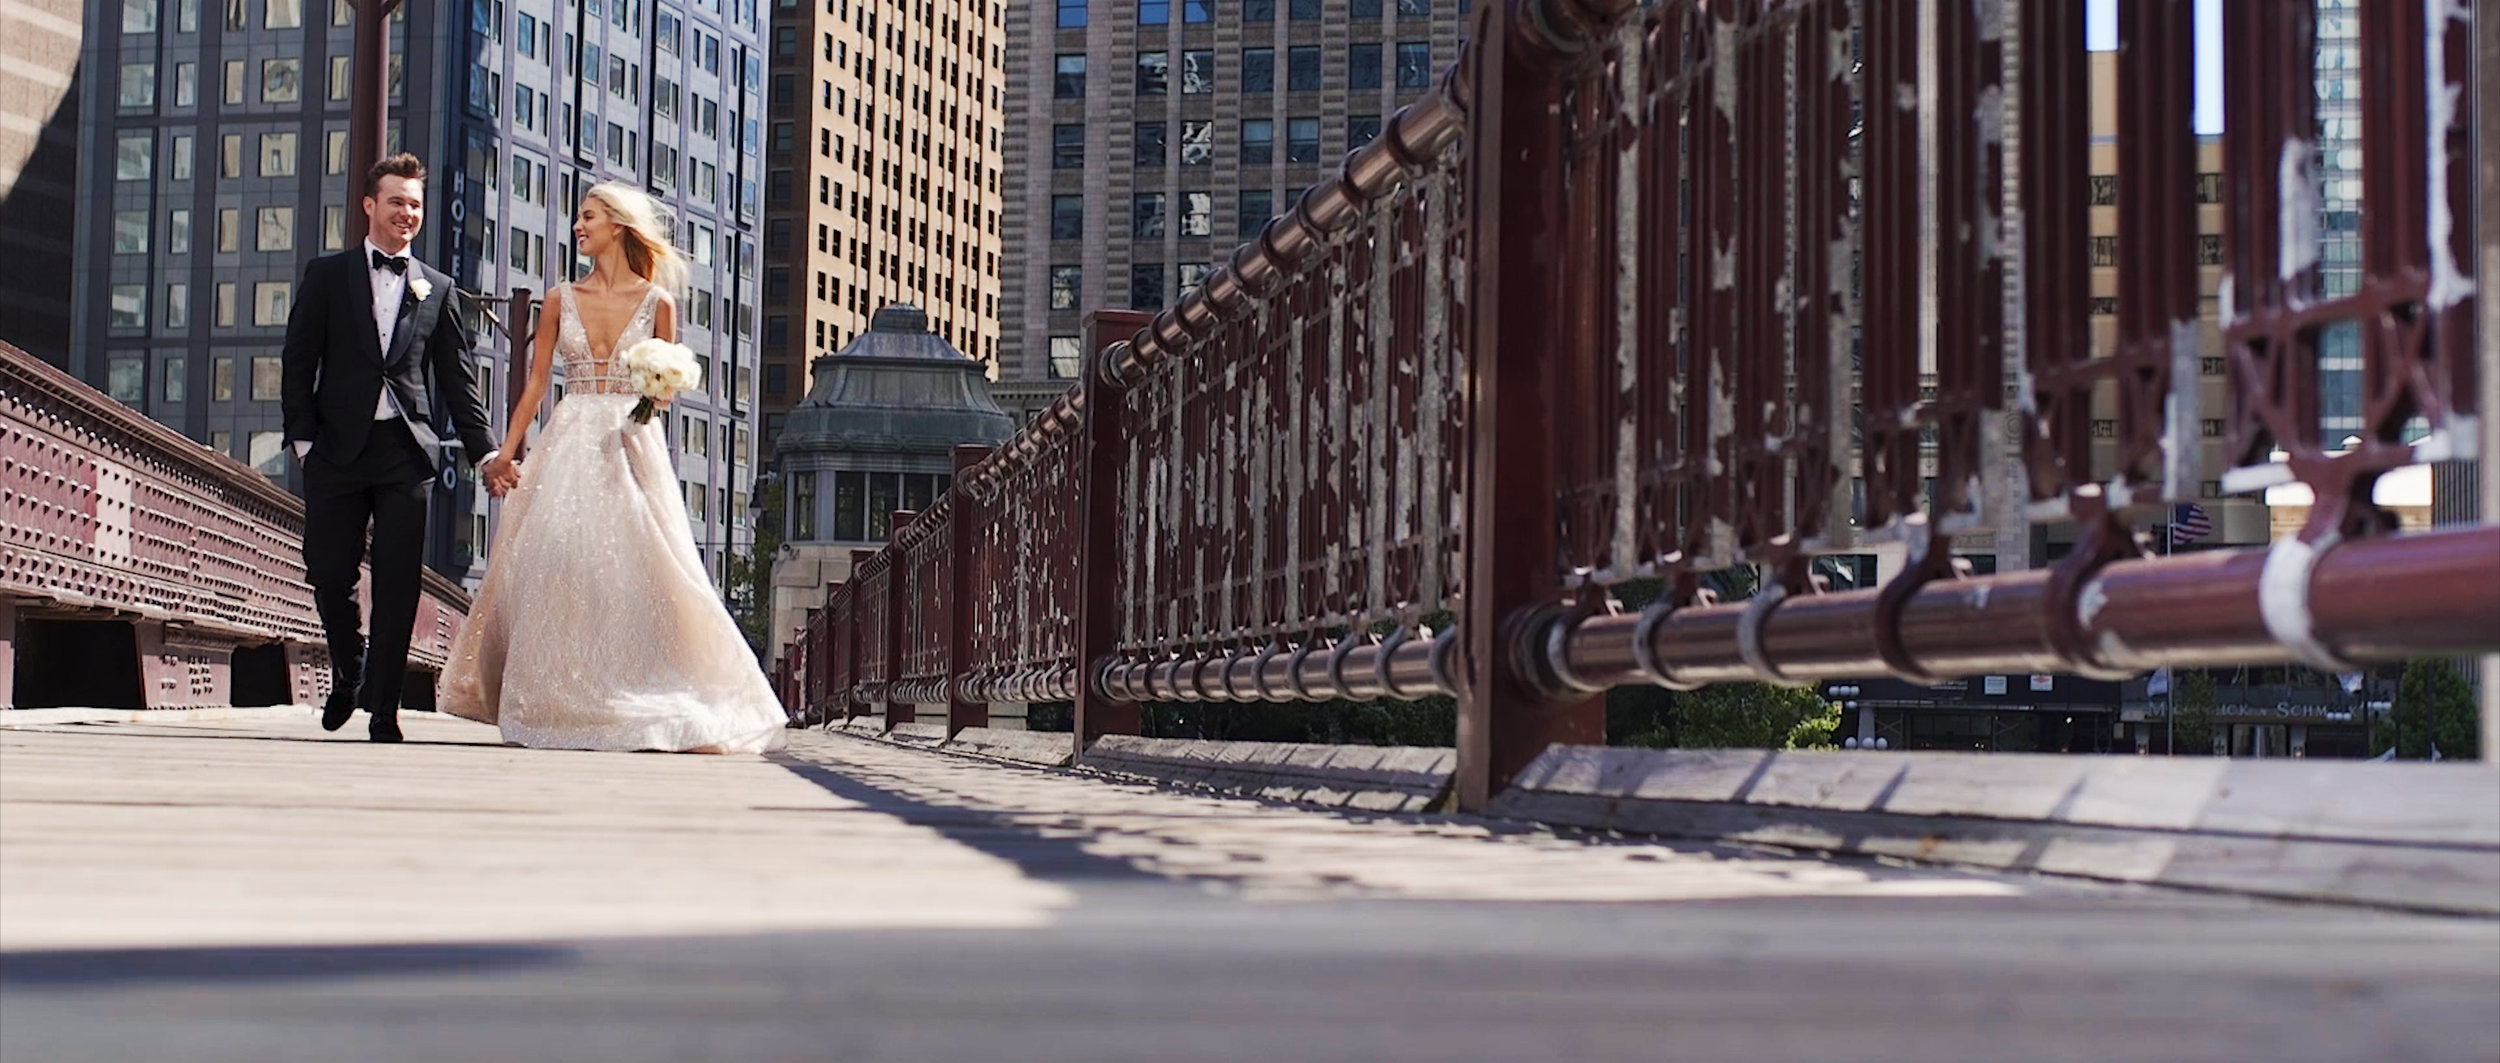 Downtown Chicago Wedding Videographer